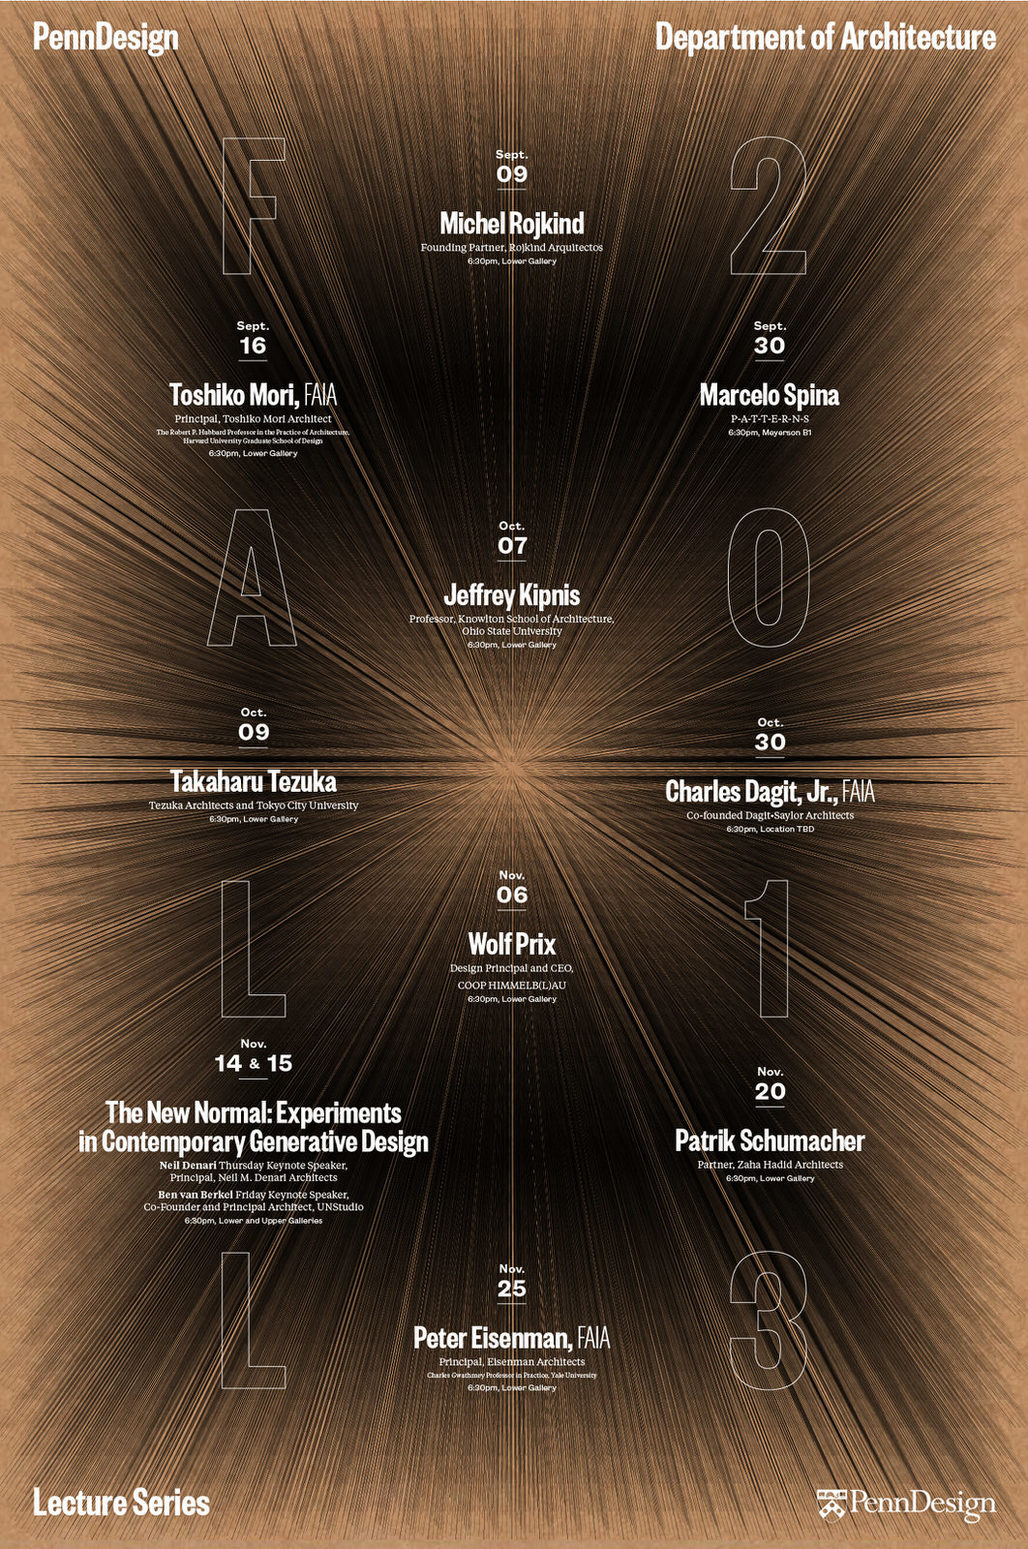 Poster for the Fall 13 lecture events at PennDesign. Design by WeShouldDoItAll (WSDIA). Image courtesy of WSDIA.